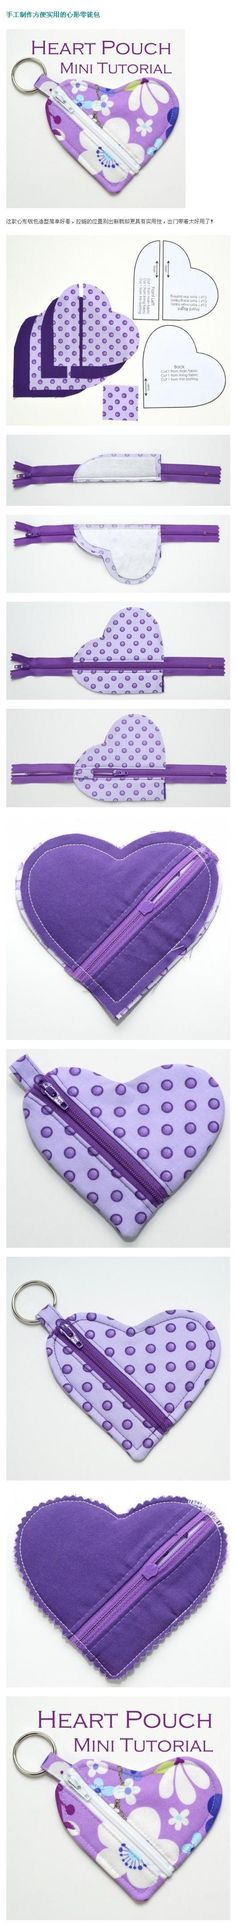 Handmade heart-shaped coin purse, convienent for coins or keys. Perhaps you could also use the idea for any shape? [foreign link, but pic shows steps to make].